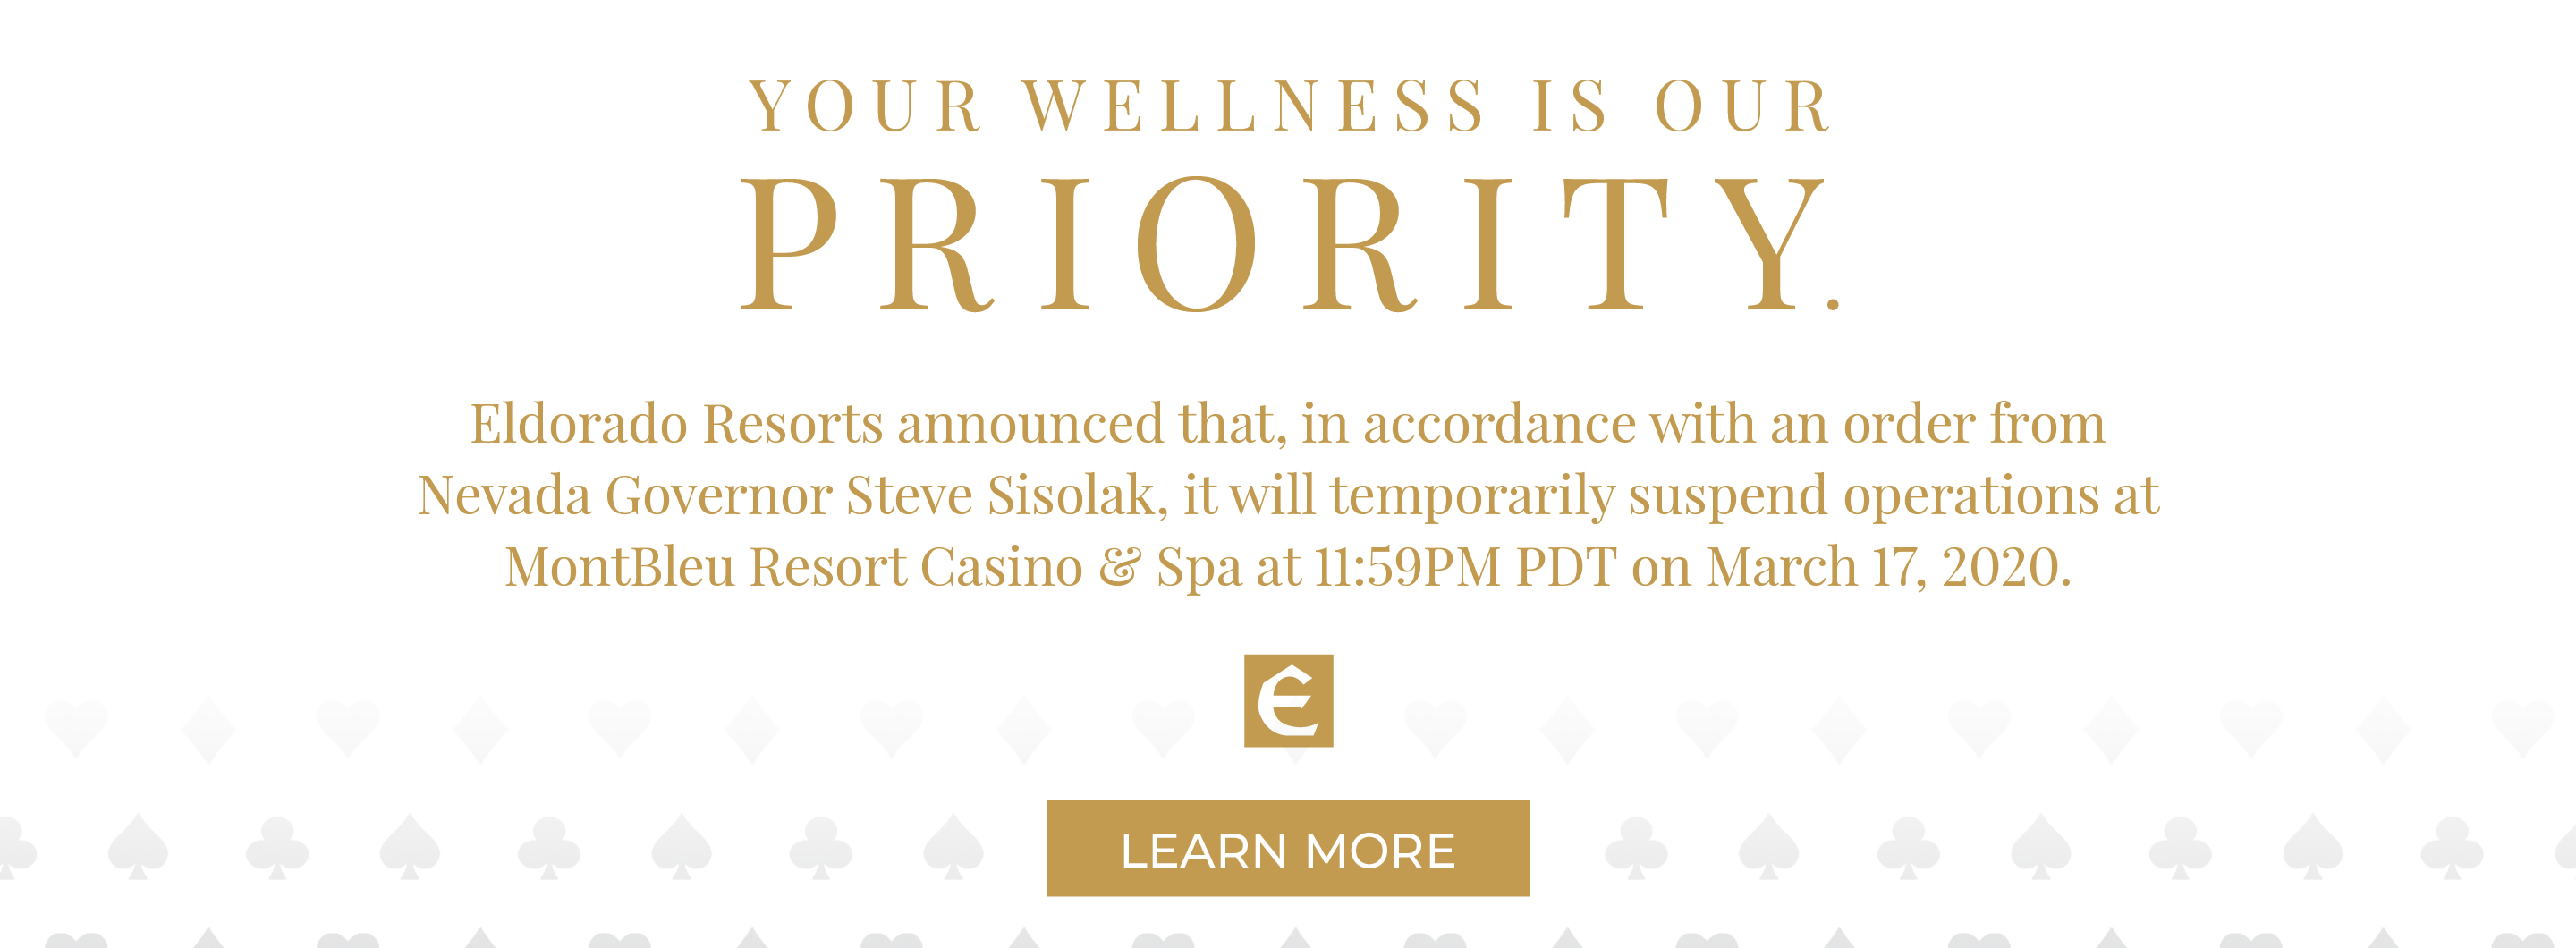 Eldorado Resorts announcement to suspend operation at MontBleu Resort Casino & Spa in accordance with an order from Nevada Governor Steve Sisolak